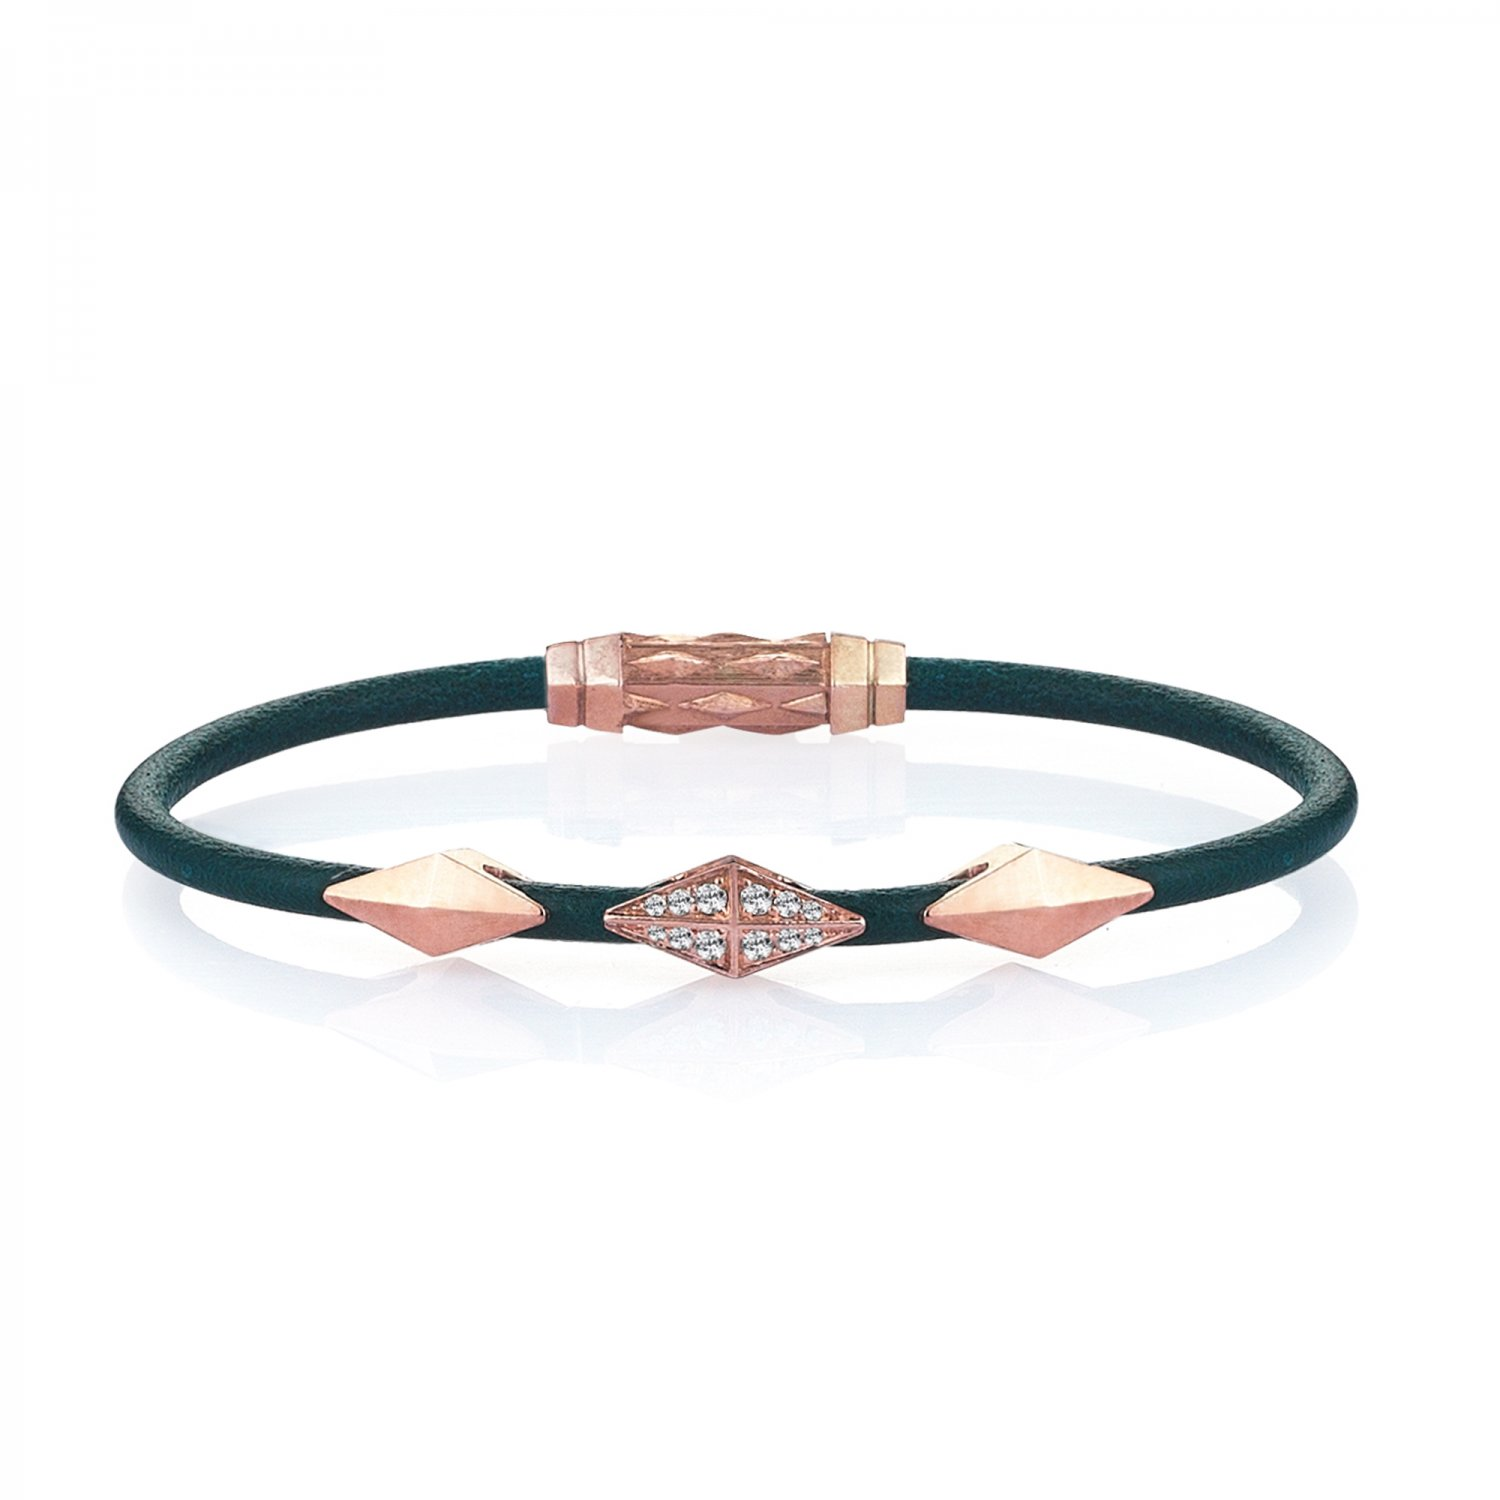 Single Lap Natural Turquoise Leather Iconic Diamondback Silver Bracelet in Rose with Diamonds